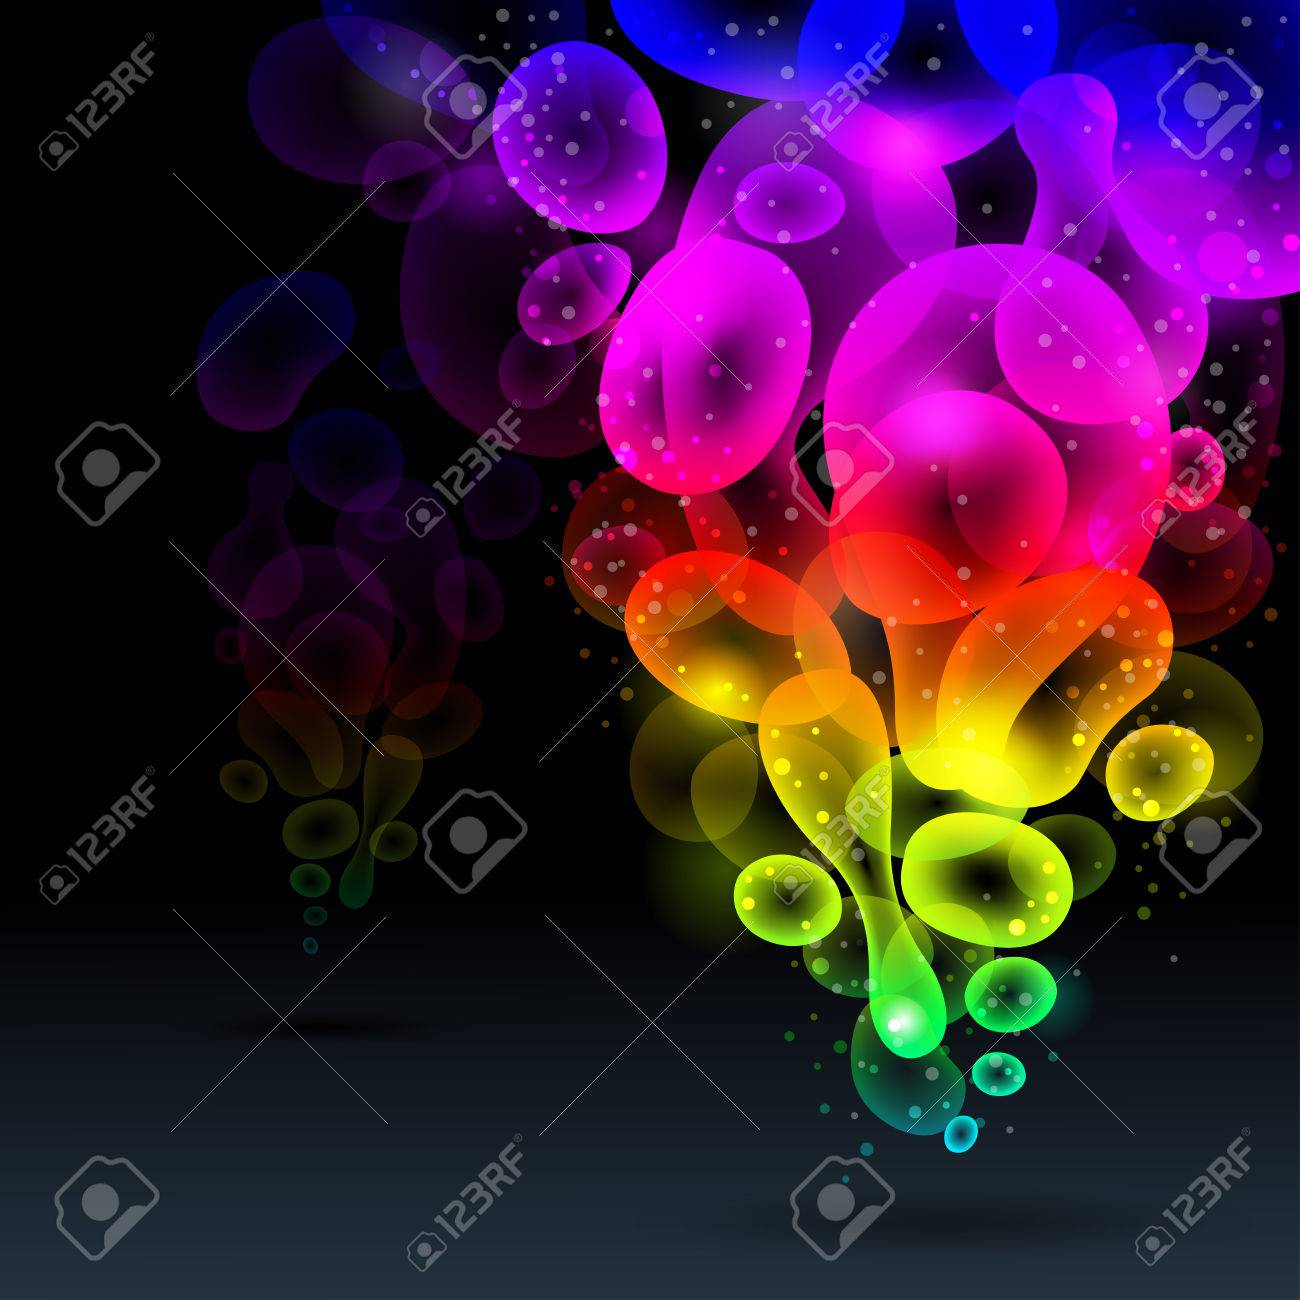 Lava lamp vector - Abstract Background Vector Rainbow Illustration Stock Vector 8698790